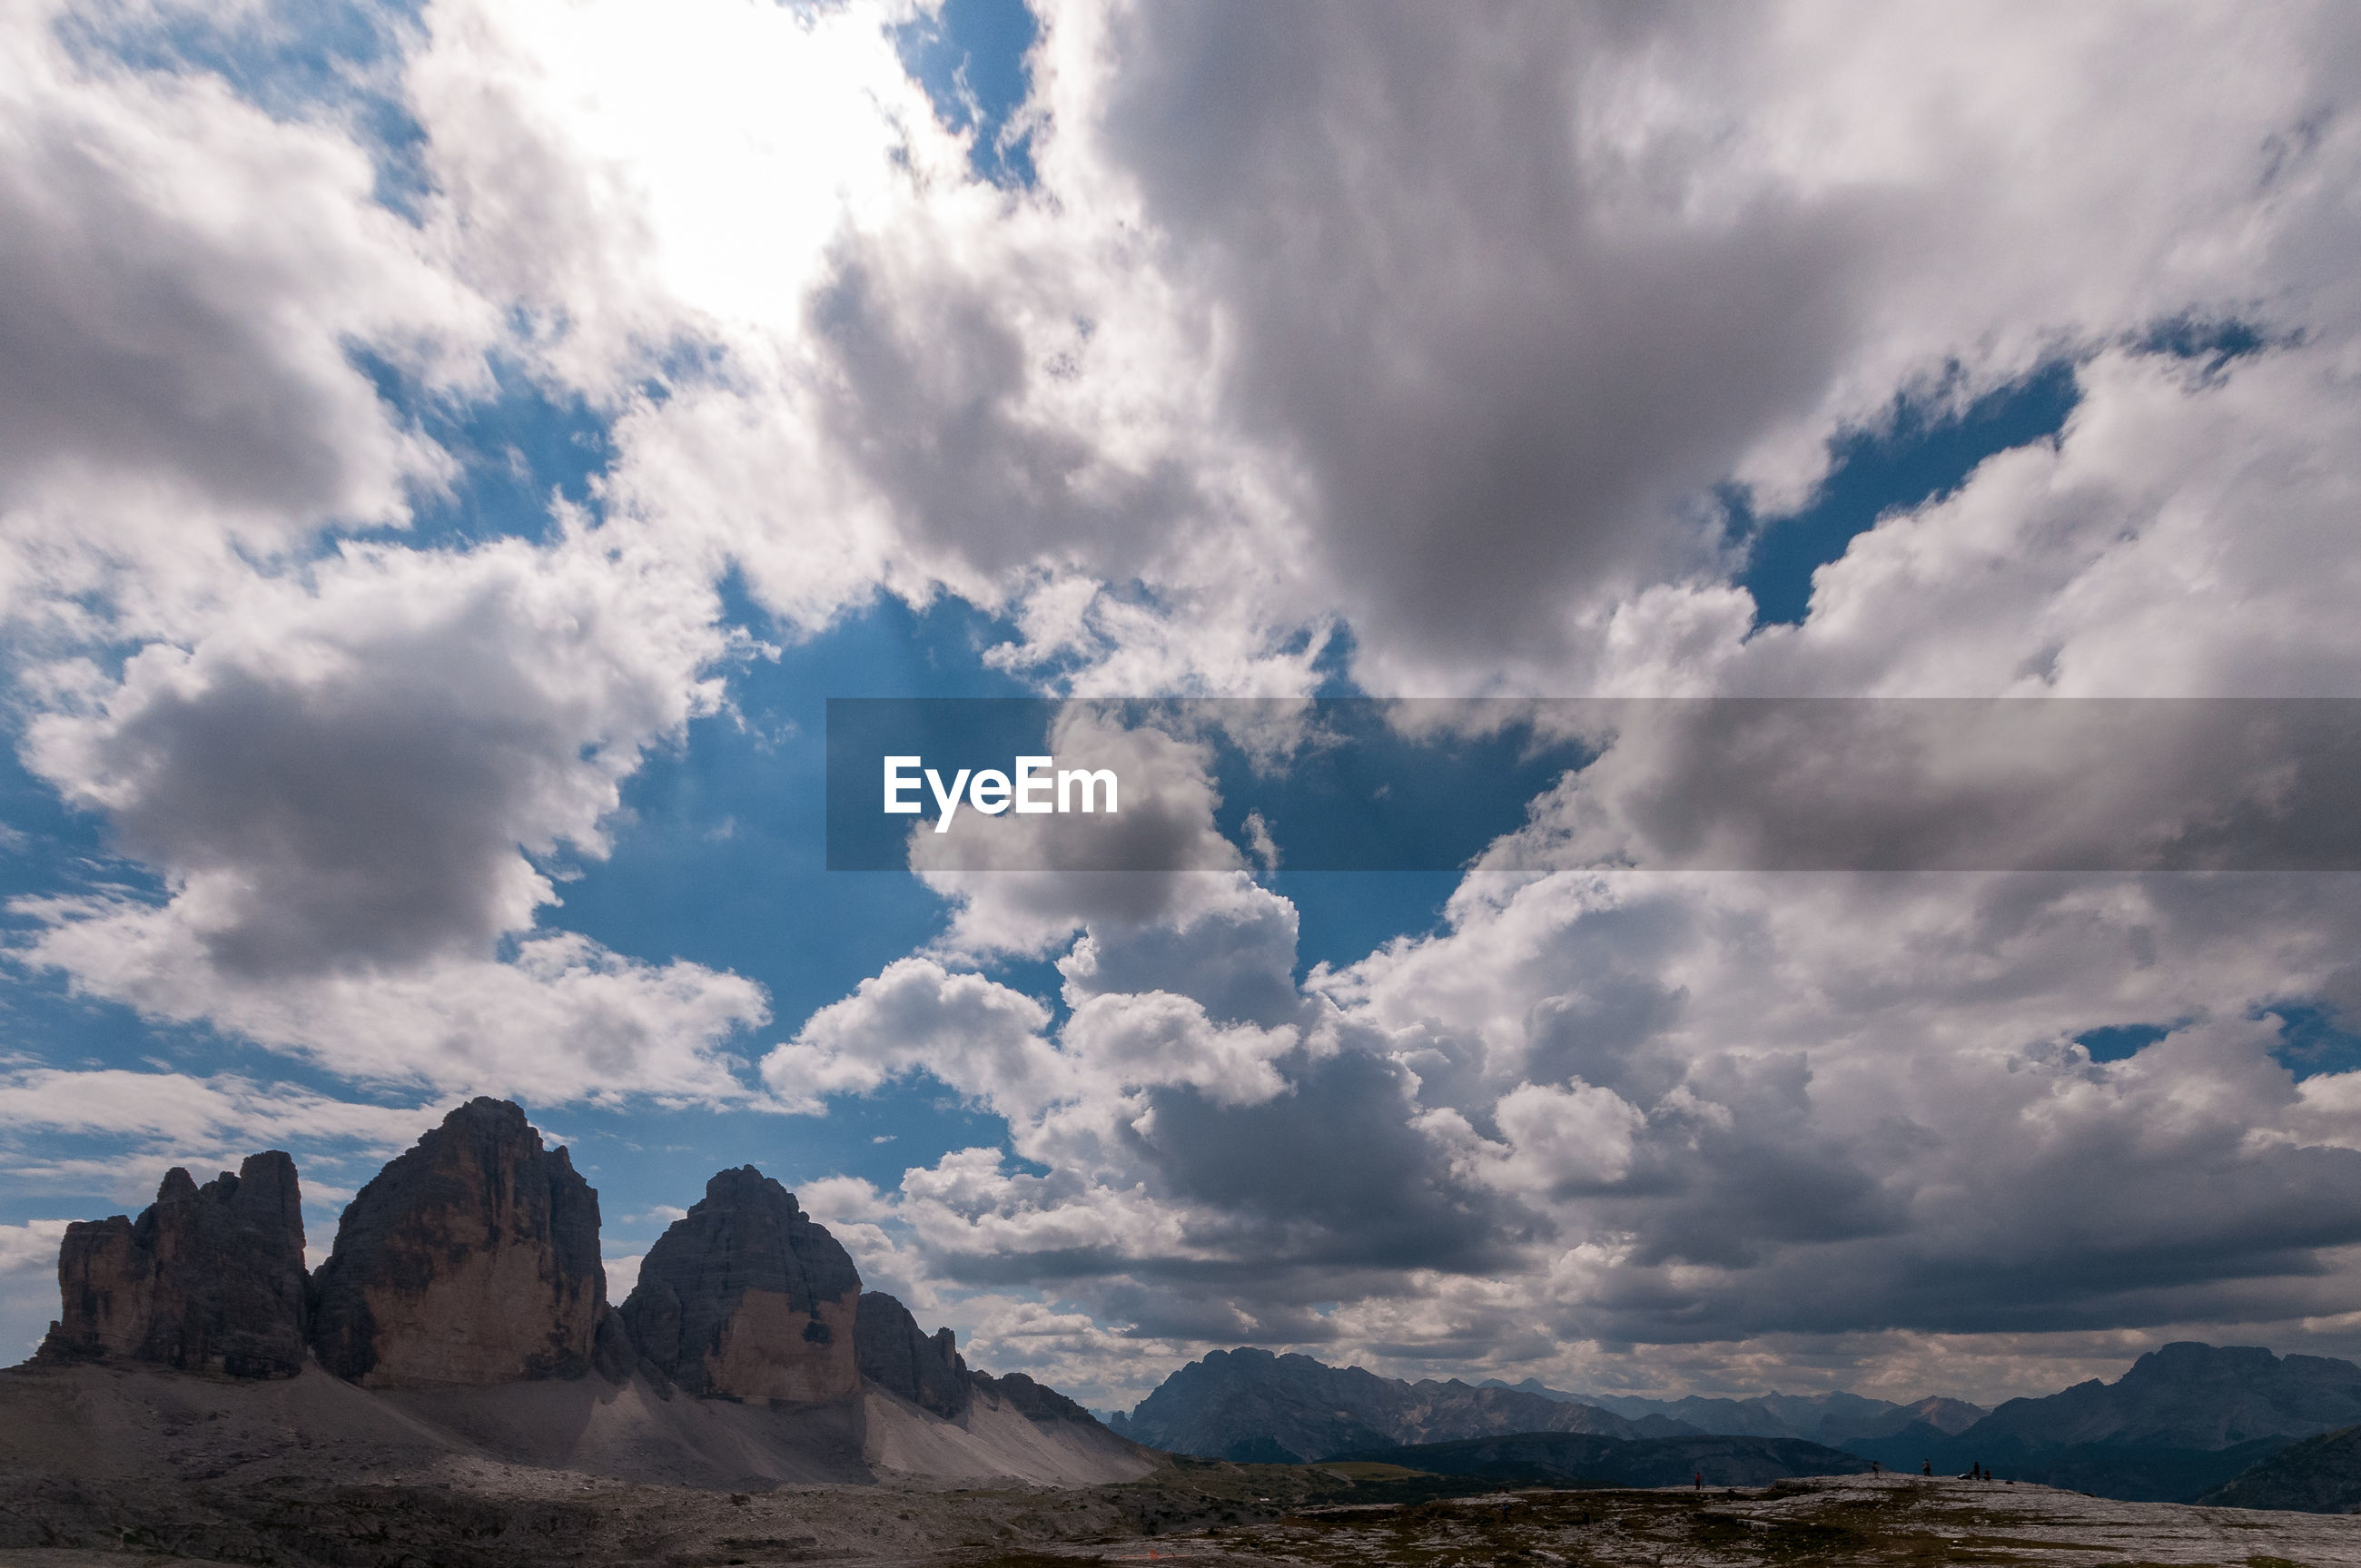 VIEW OF CLOUDS OVER MOUNTAIN